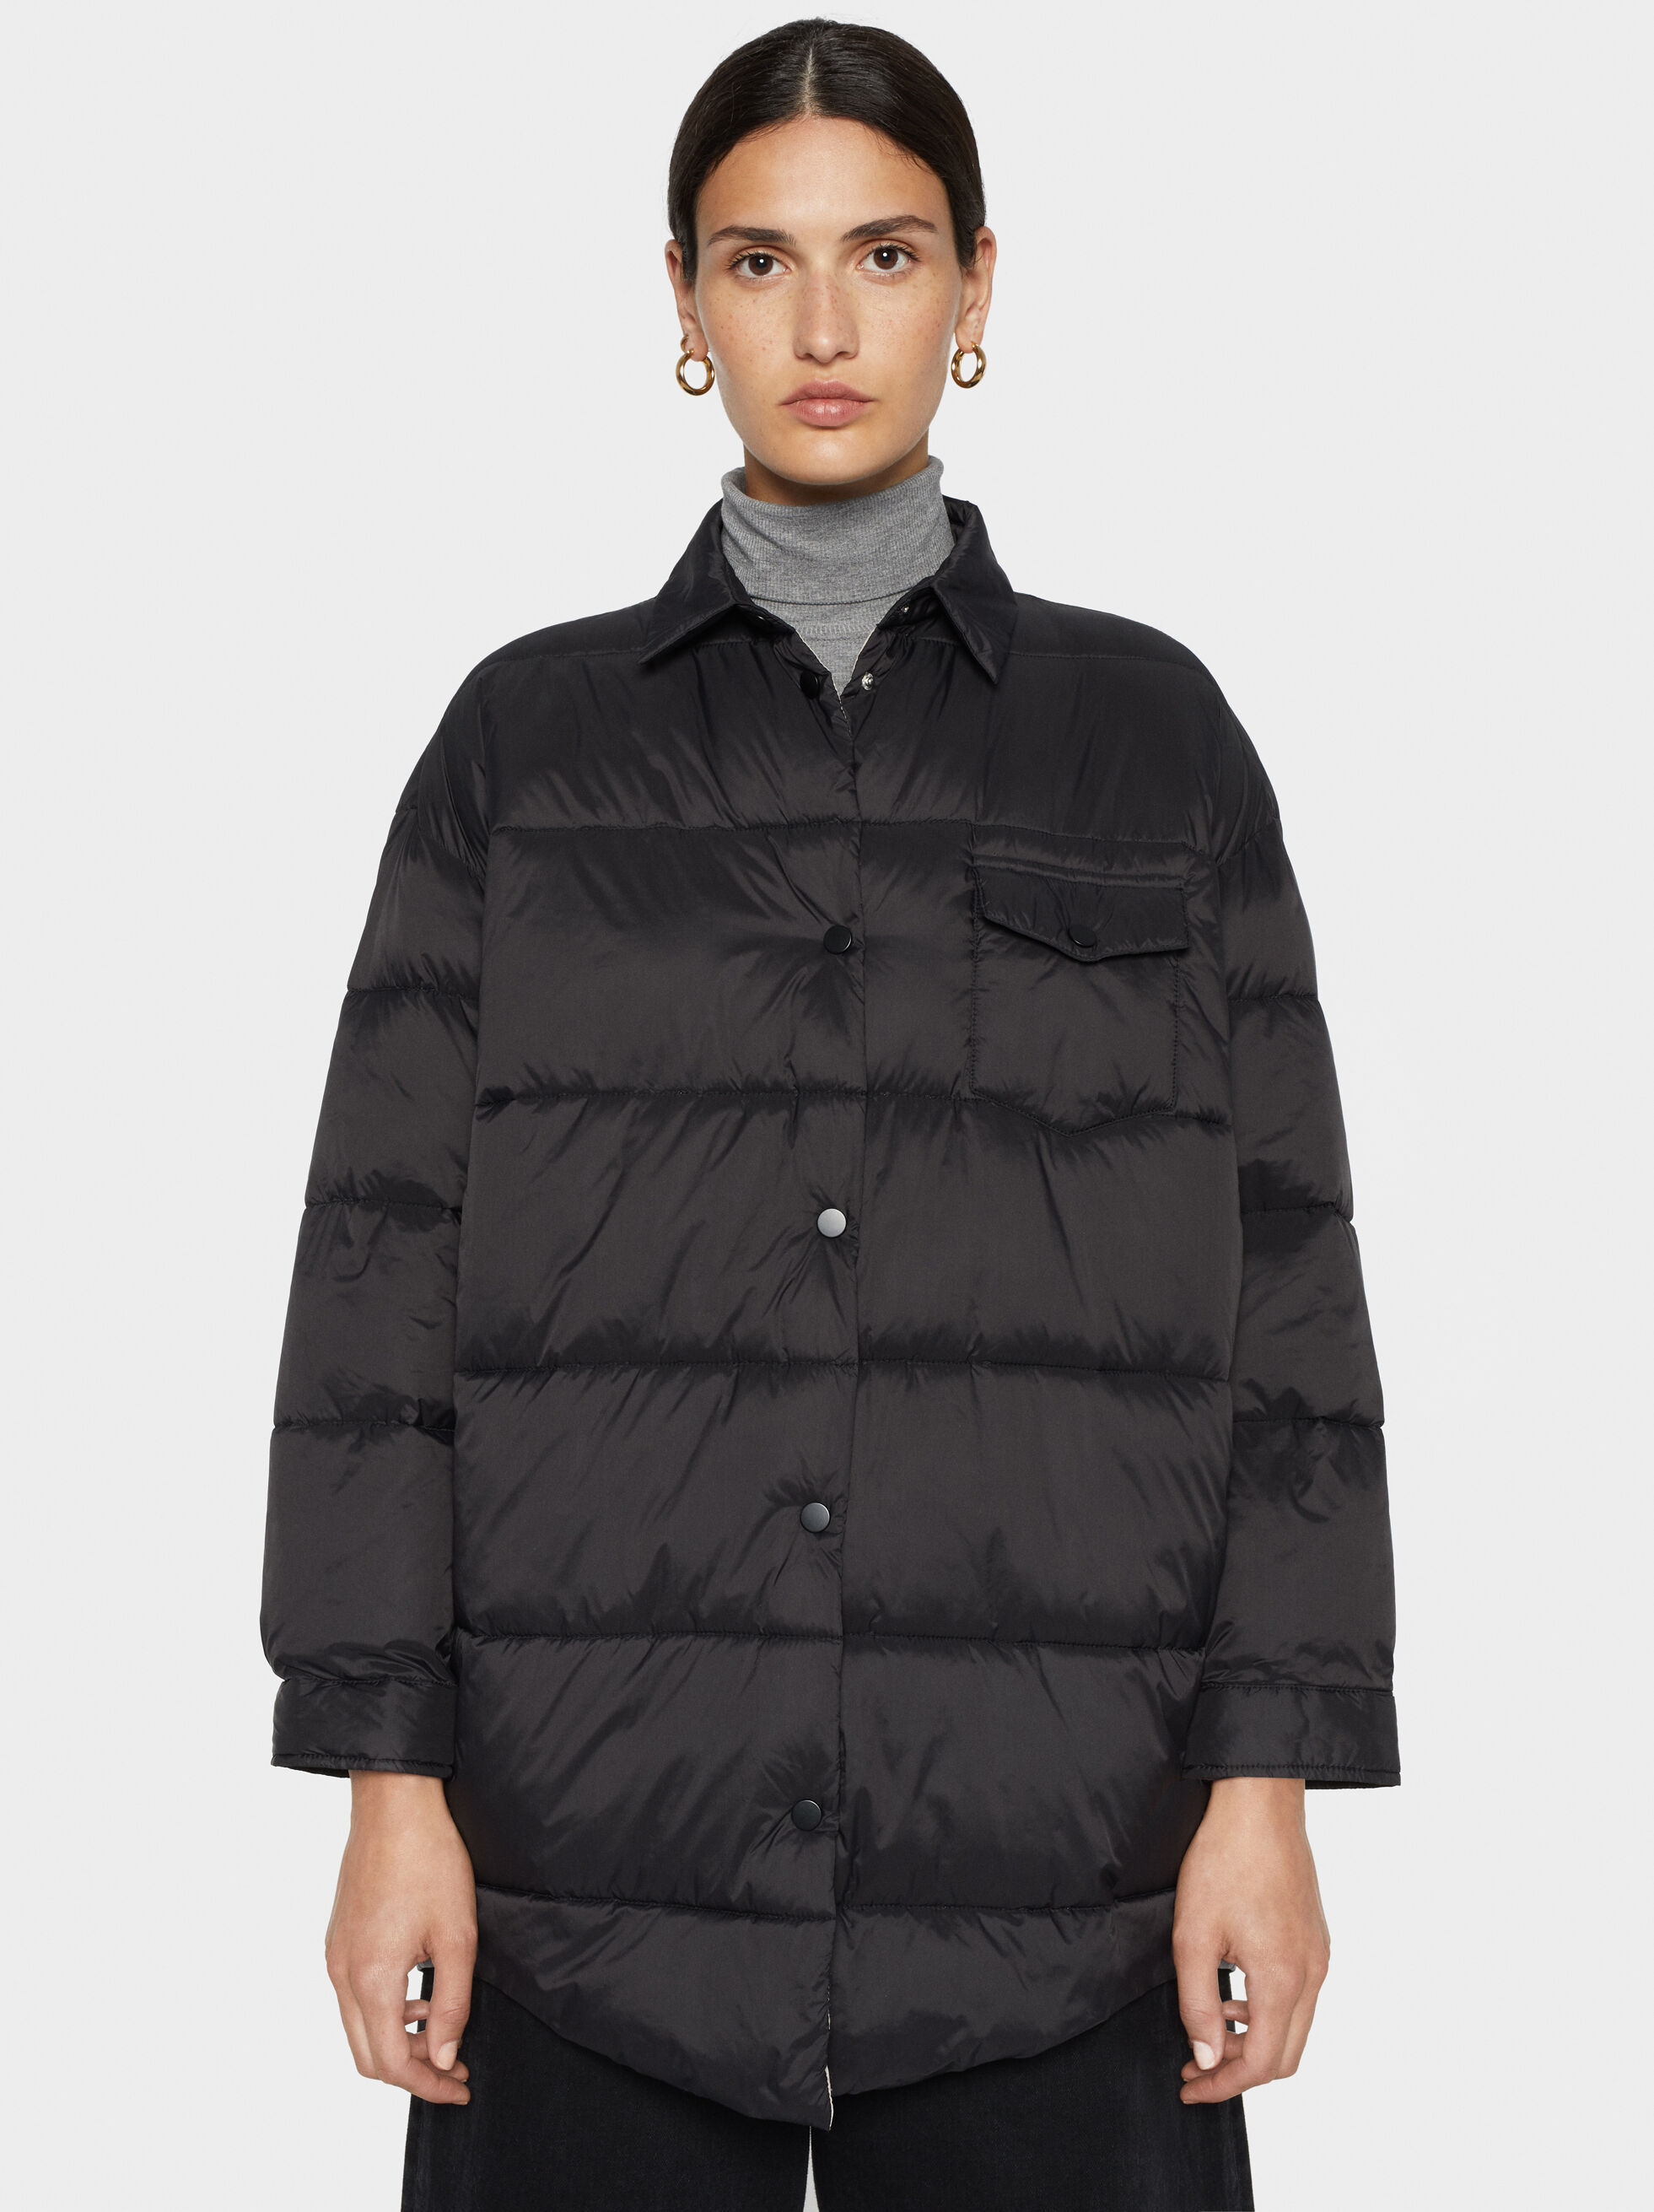 Oversized Quilted Jacket, , hi-res